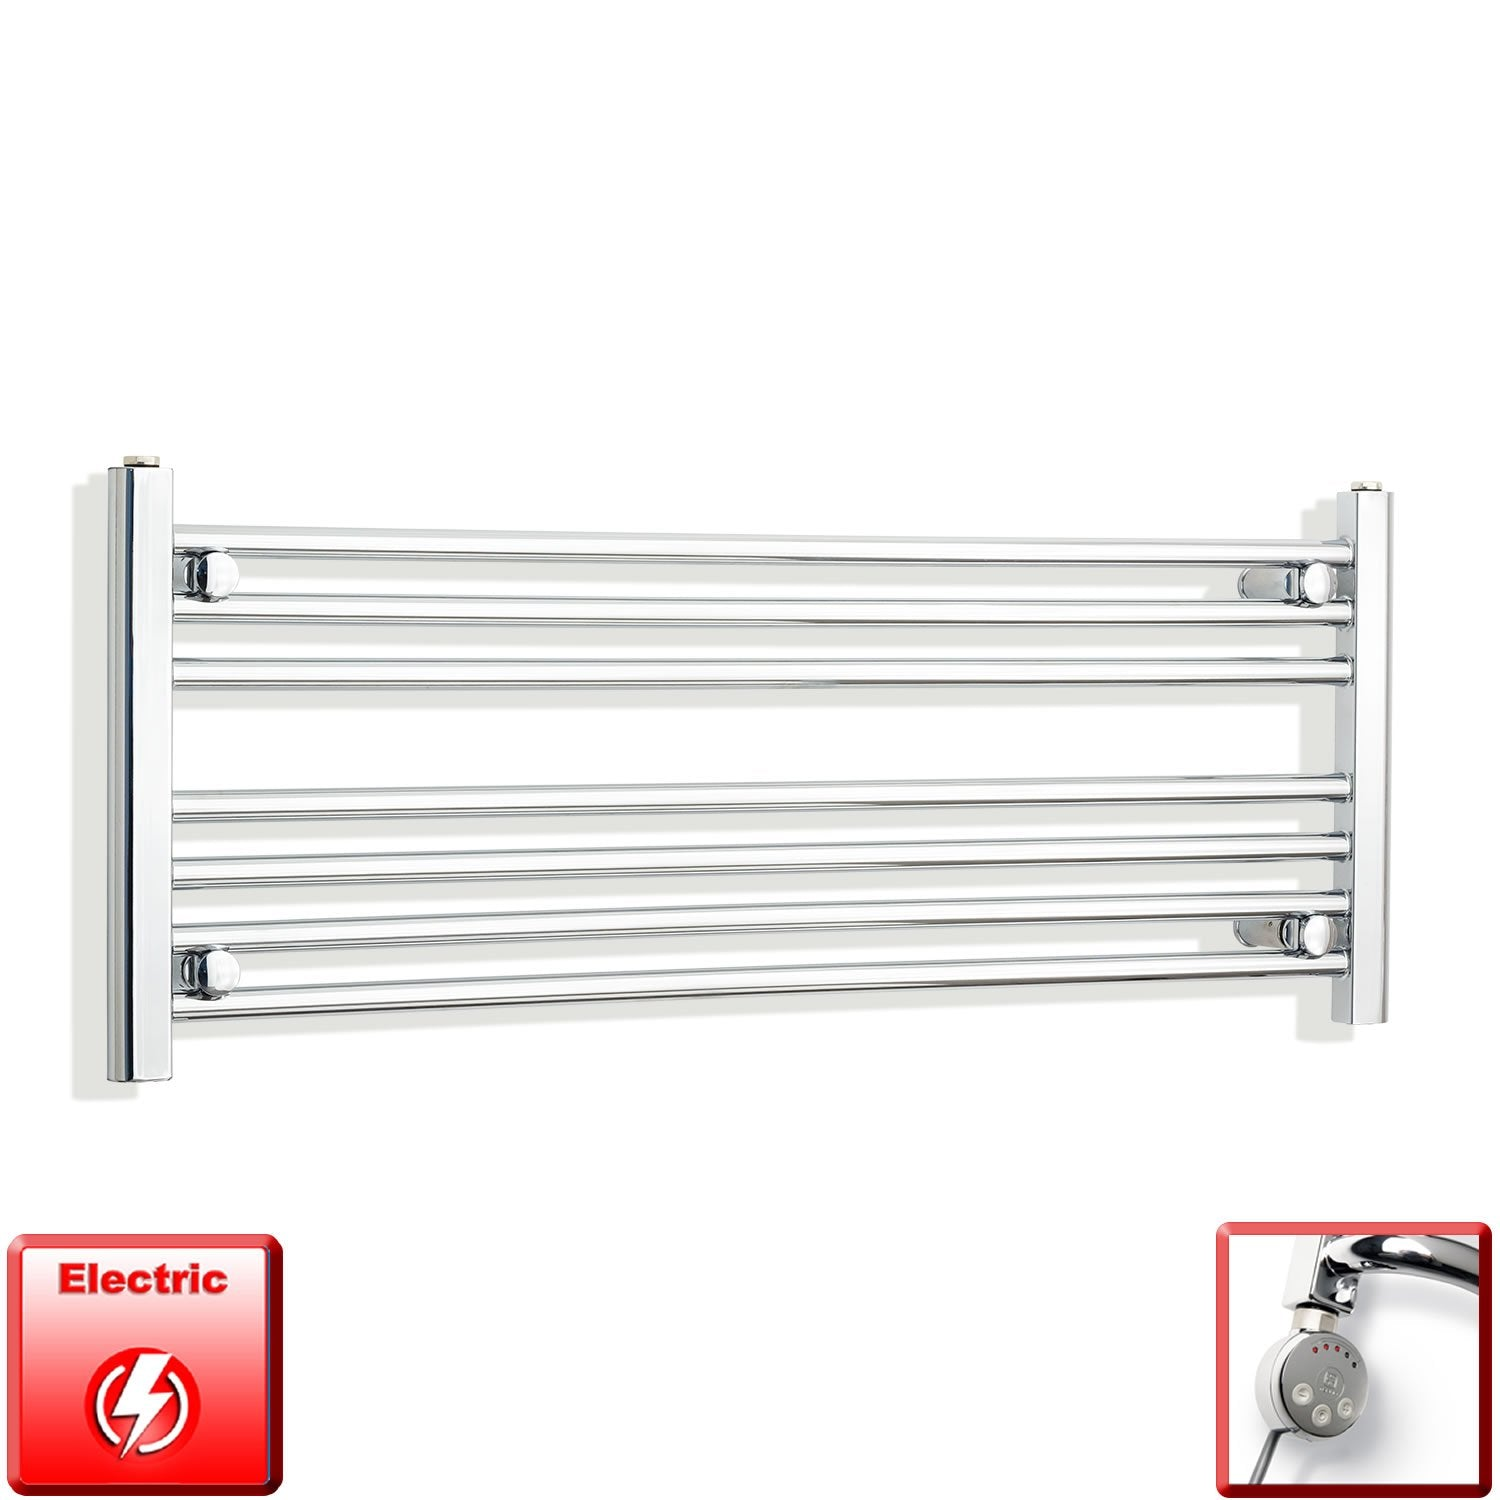 950mm Wide 400mm High Flat Chrome Pre-Filled Electric Heated Towel Rail Radiator HTR,MEG Thermostatic Element